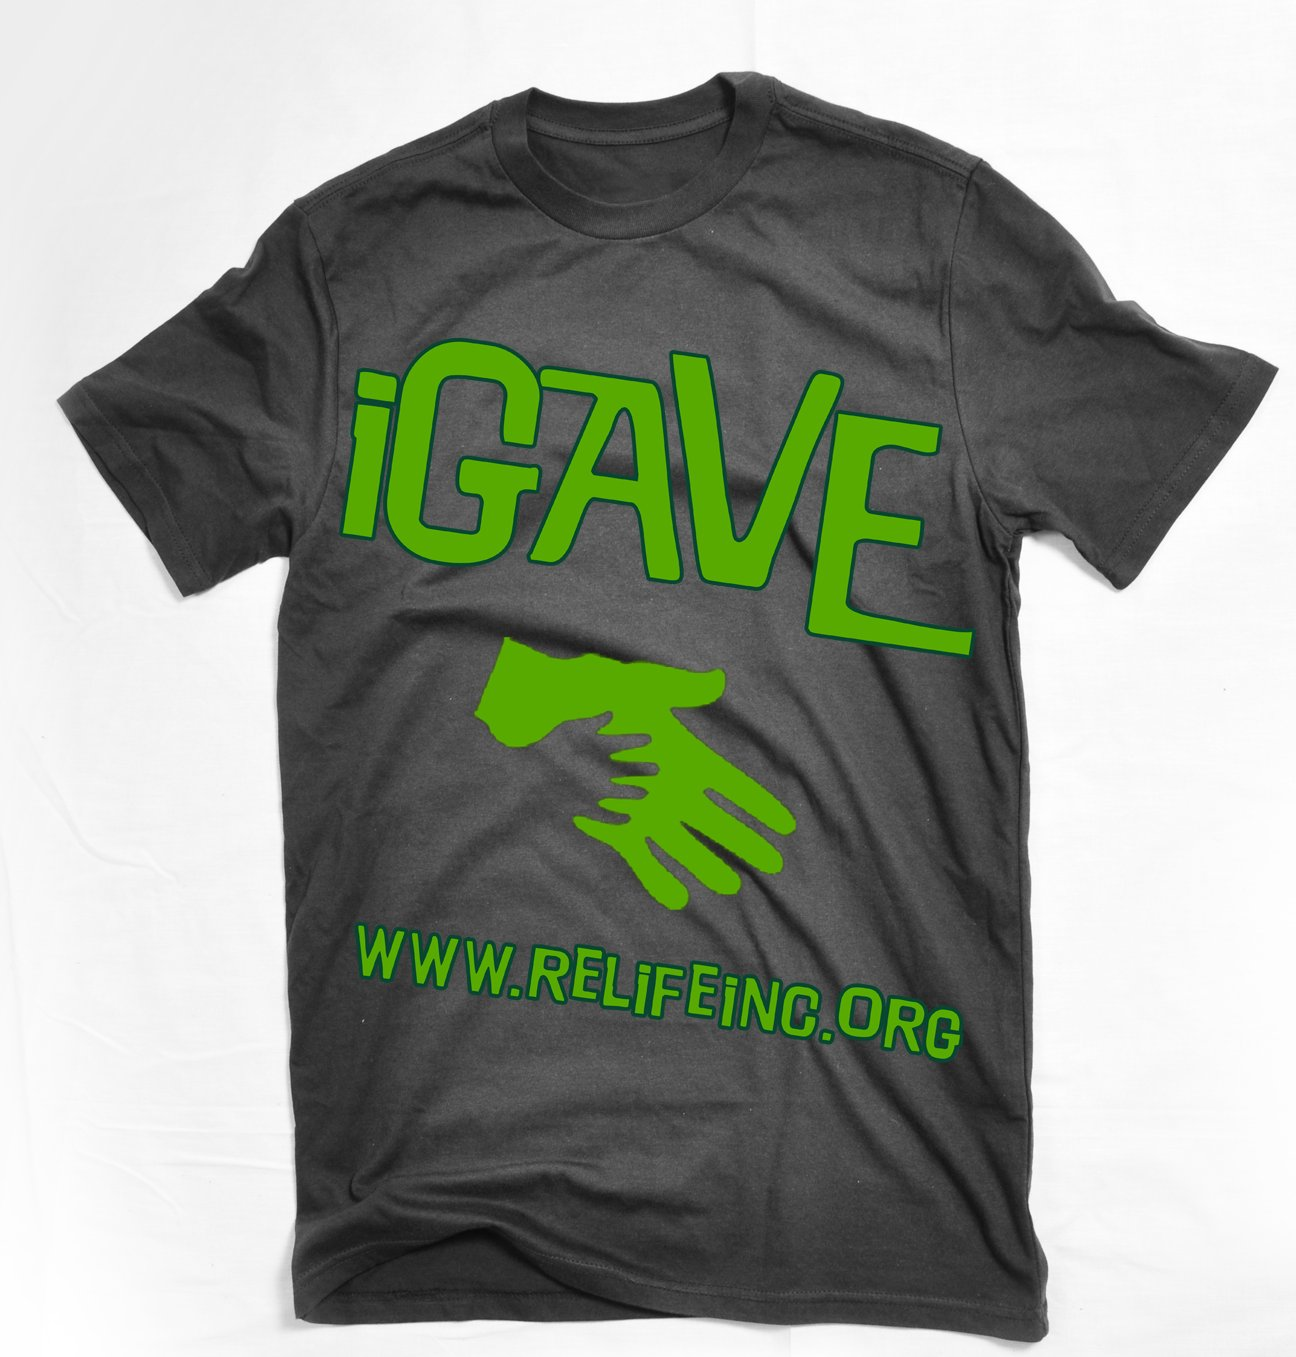 Re:LIFE 'iGAVE' Tees - XLarge